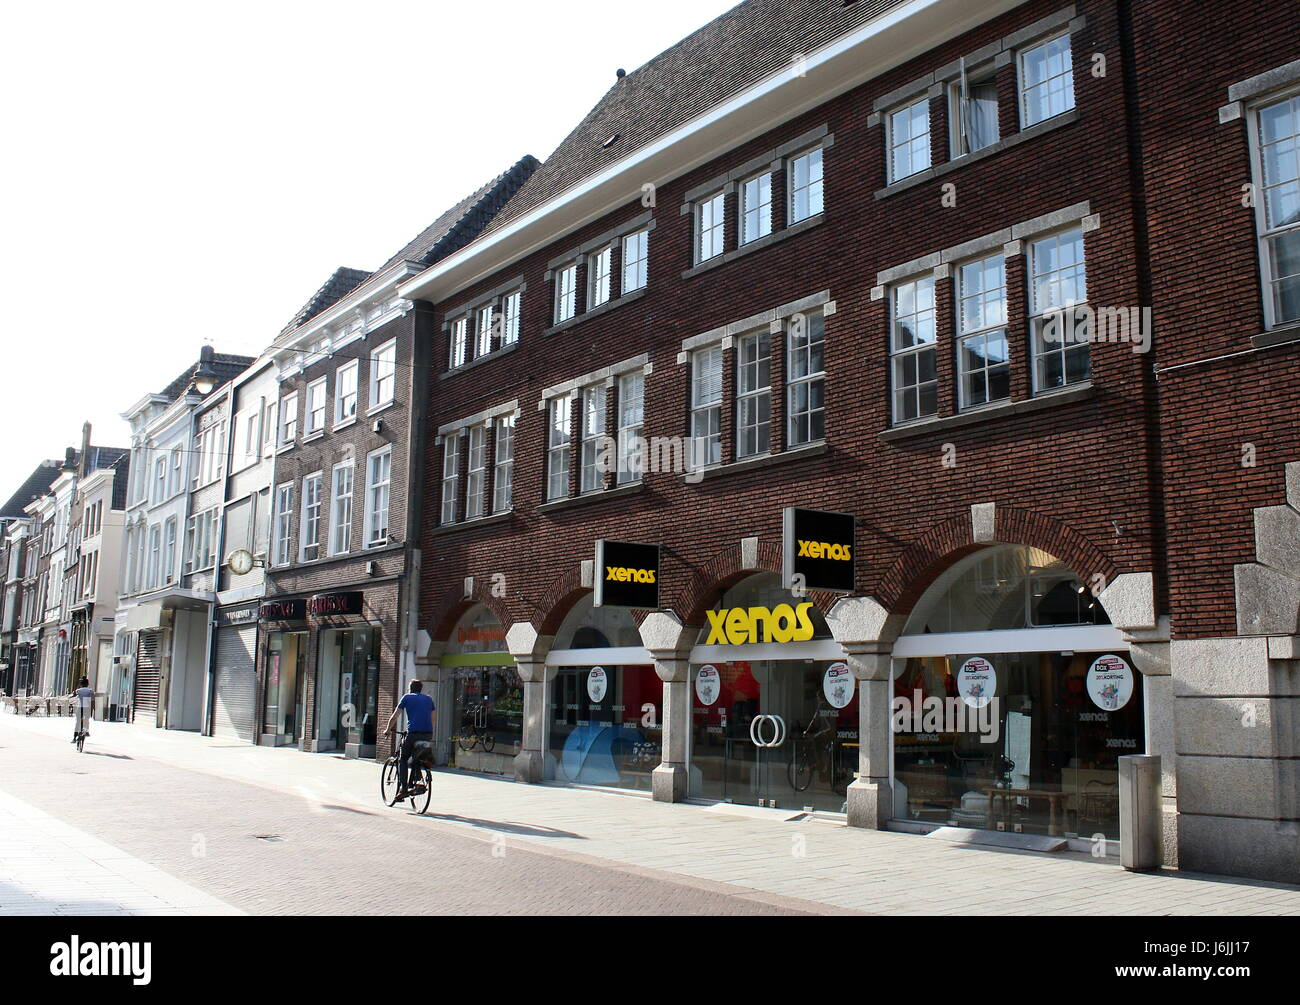 Xenos retail chain store located at central Hinthamerstraat in Den Bosch, North Brabant, Netherlands - Stock Image